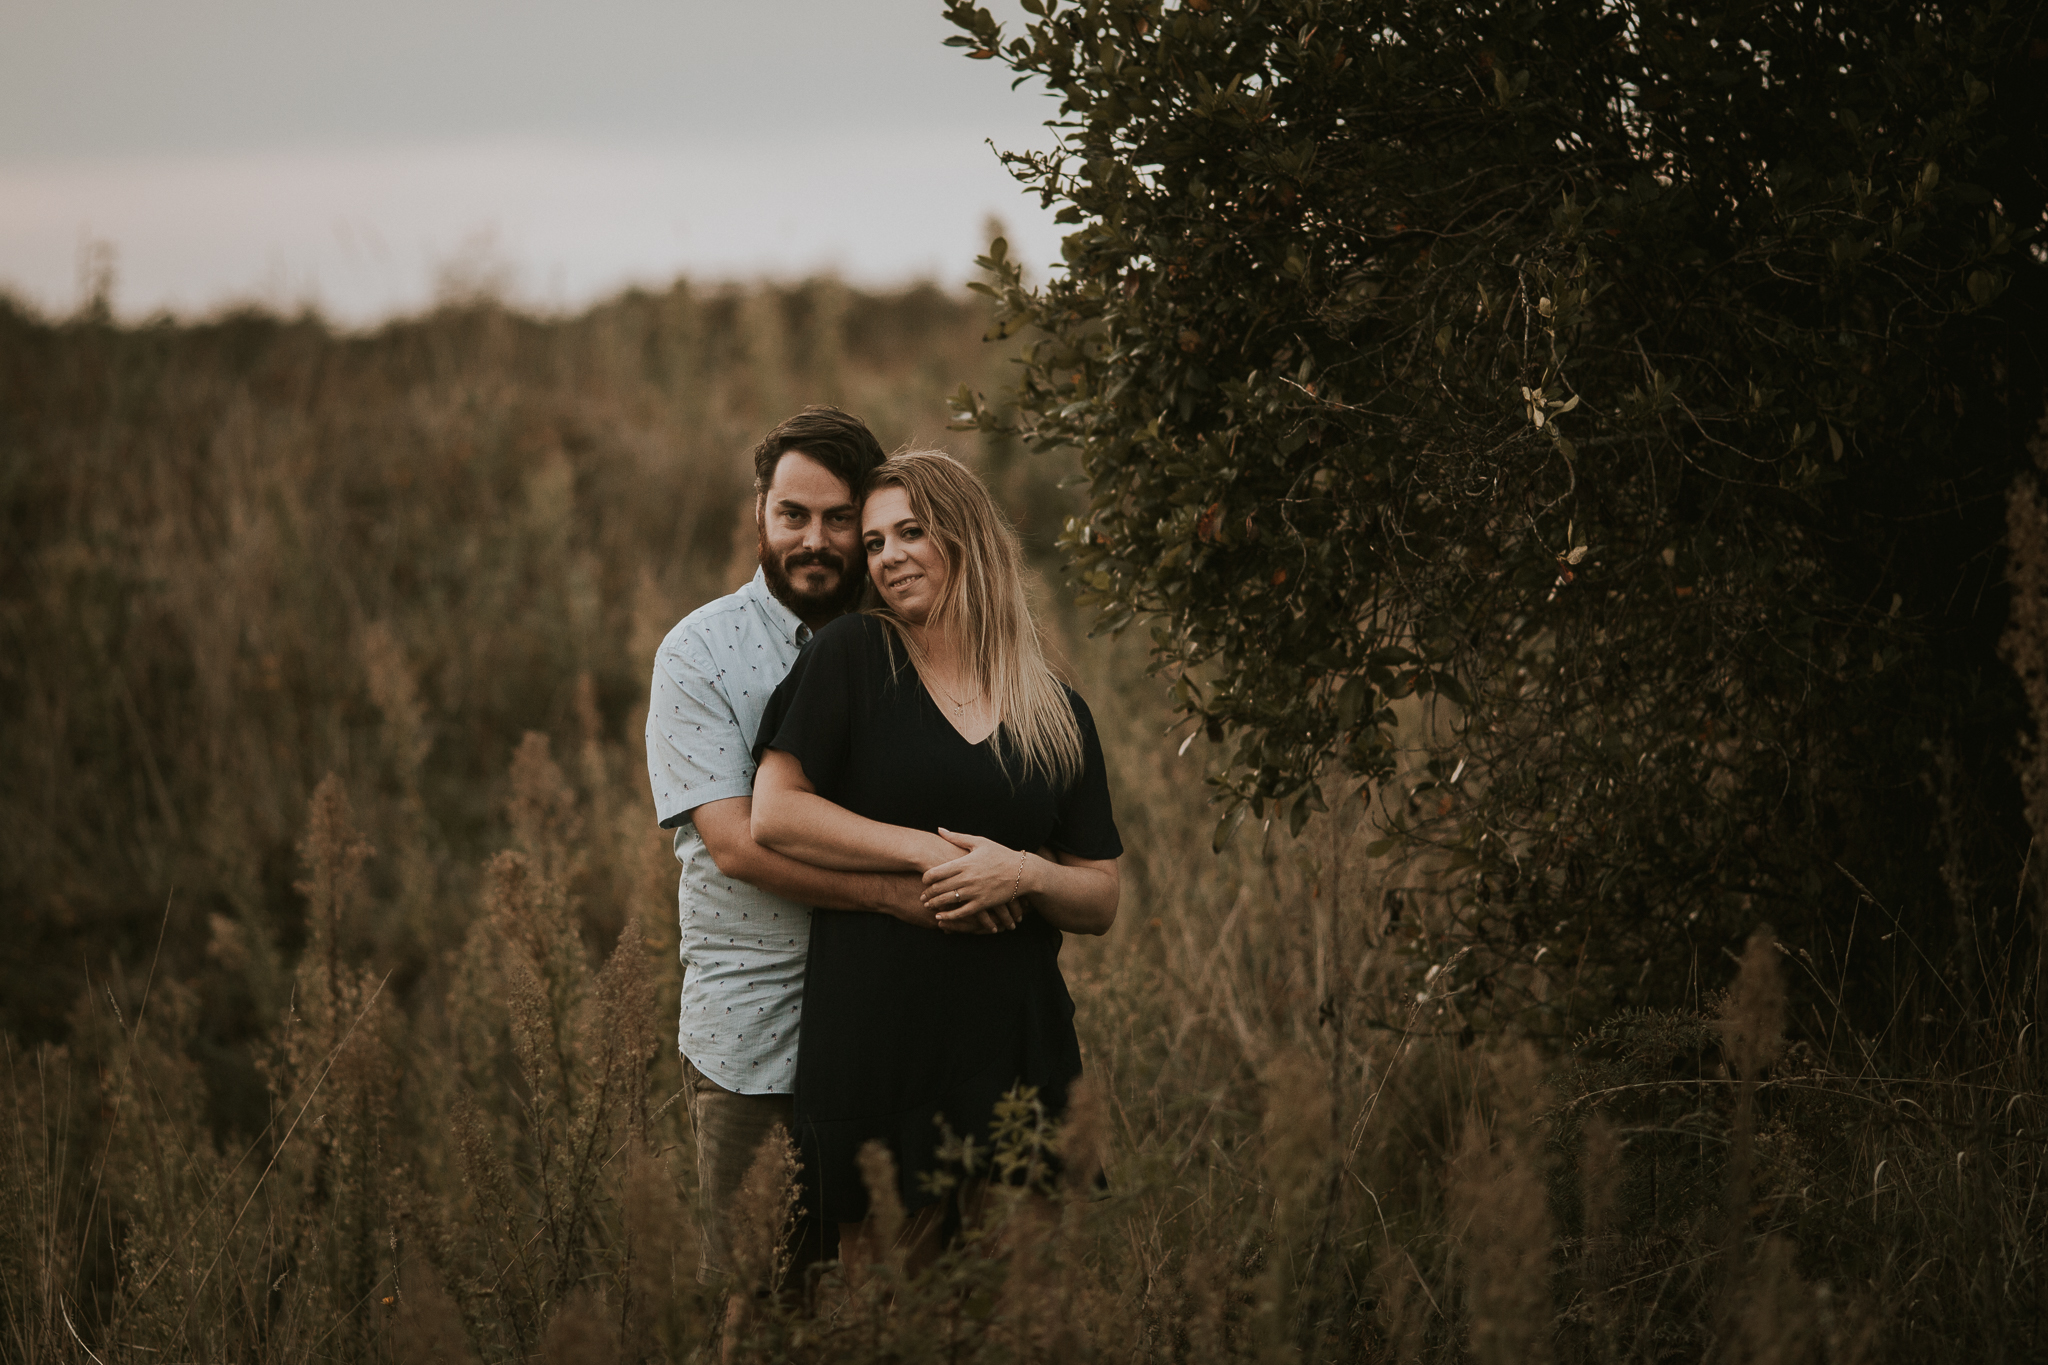 Ohope Beach engagement Shoot Wedding Photographer Napier-101.jpg